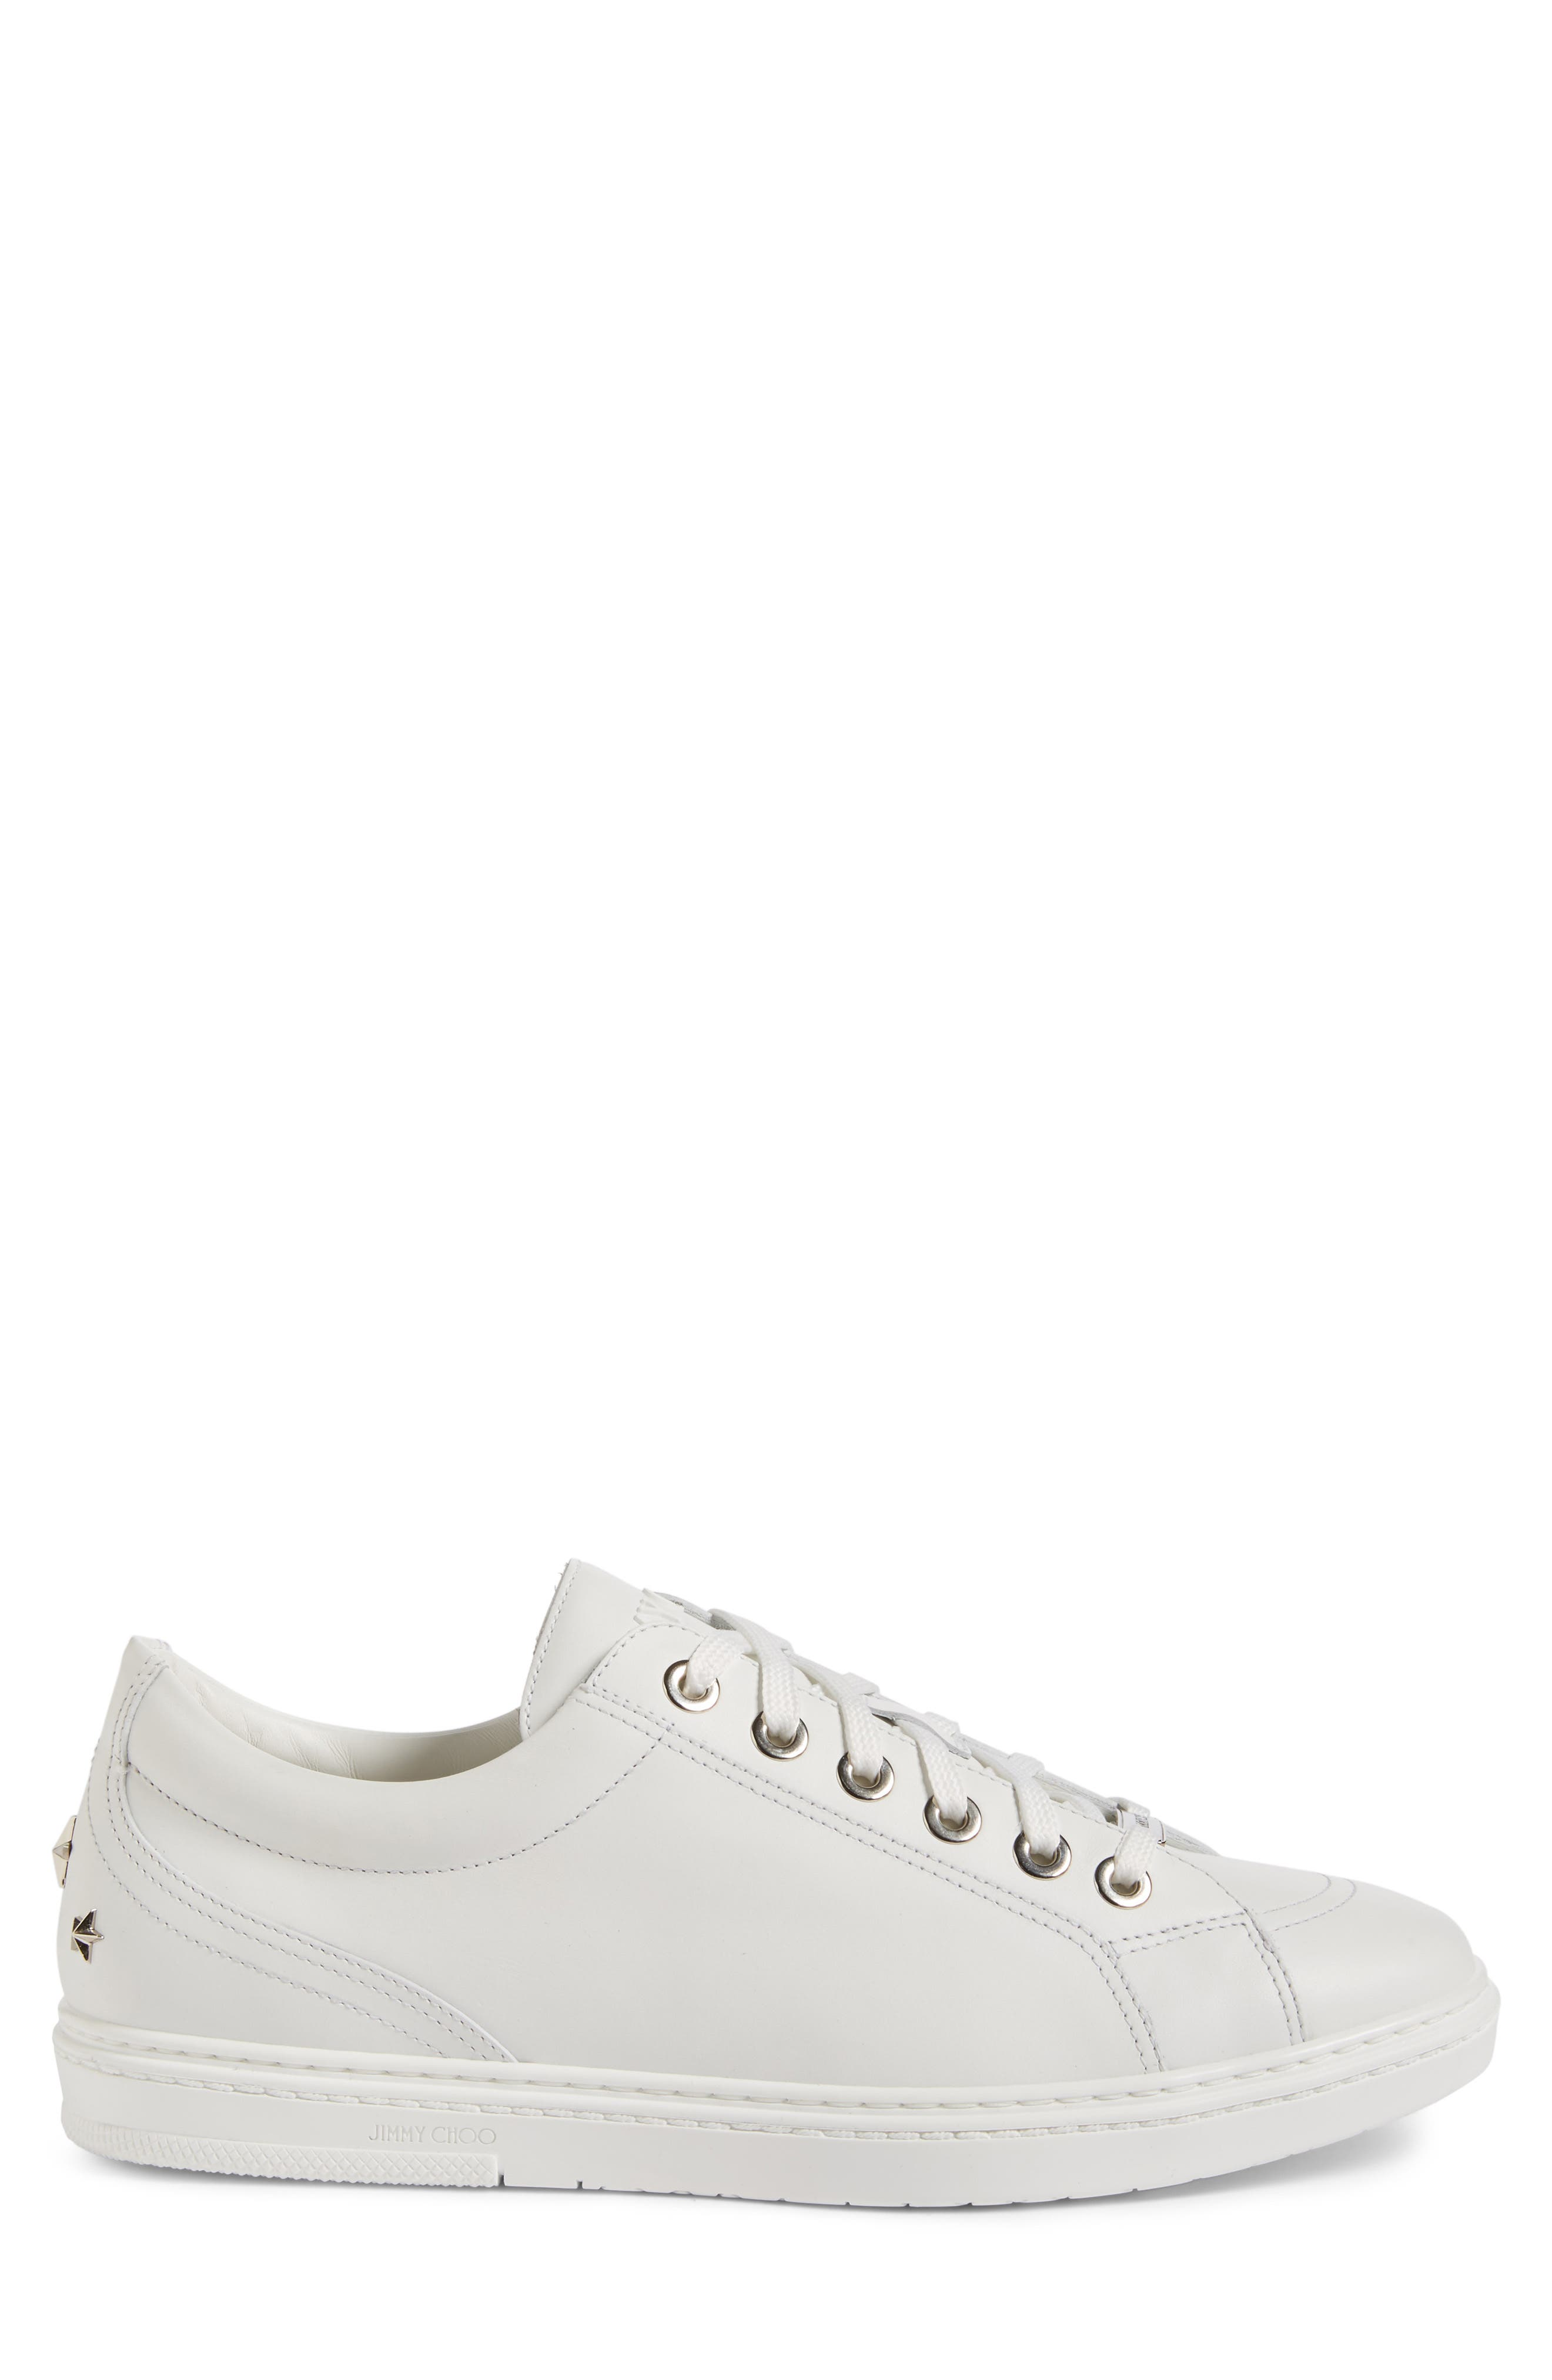 Cash Star Sneaker,                             Alternate thumbnail 3, color,                             Ultra White